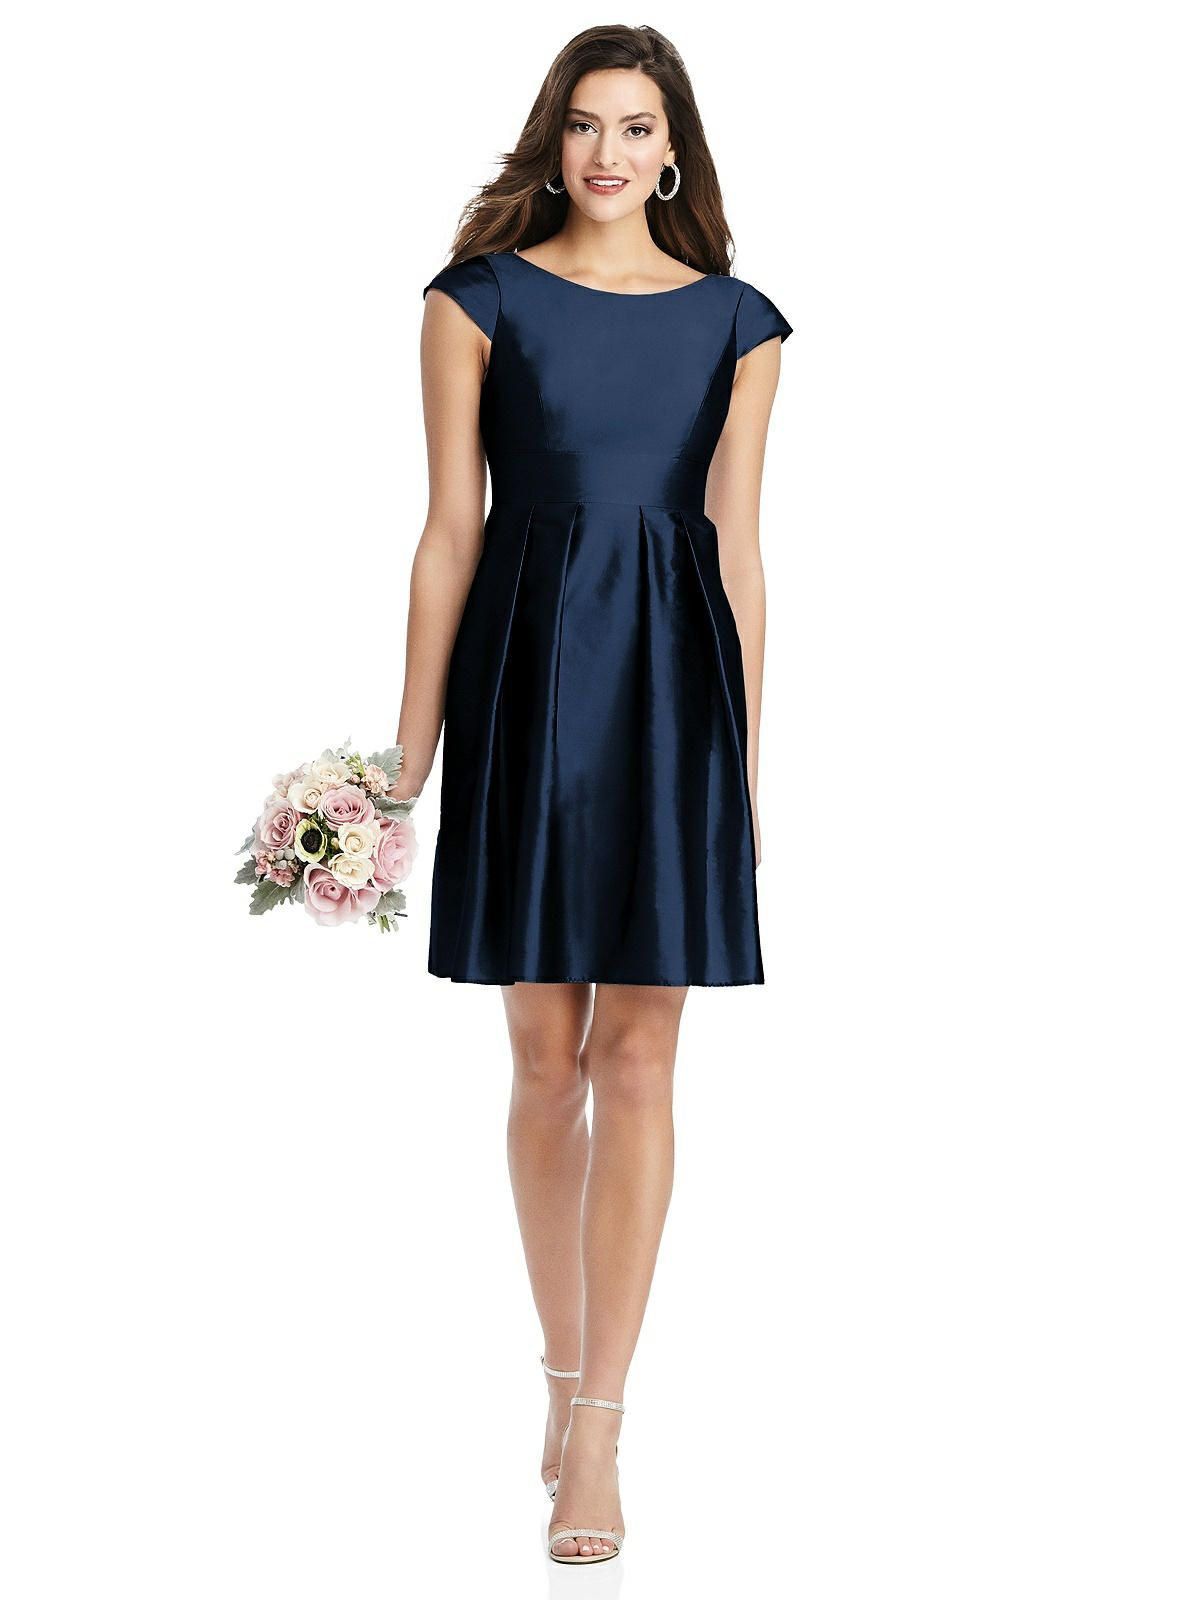 Cap Sleeve Pleated Skirt Cocktail Dress With Pockets In 2020 Cocktail Dress Dresses Pleated Skirt